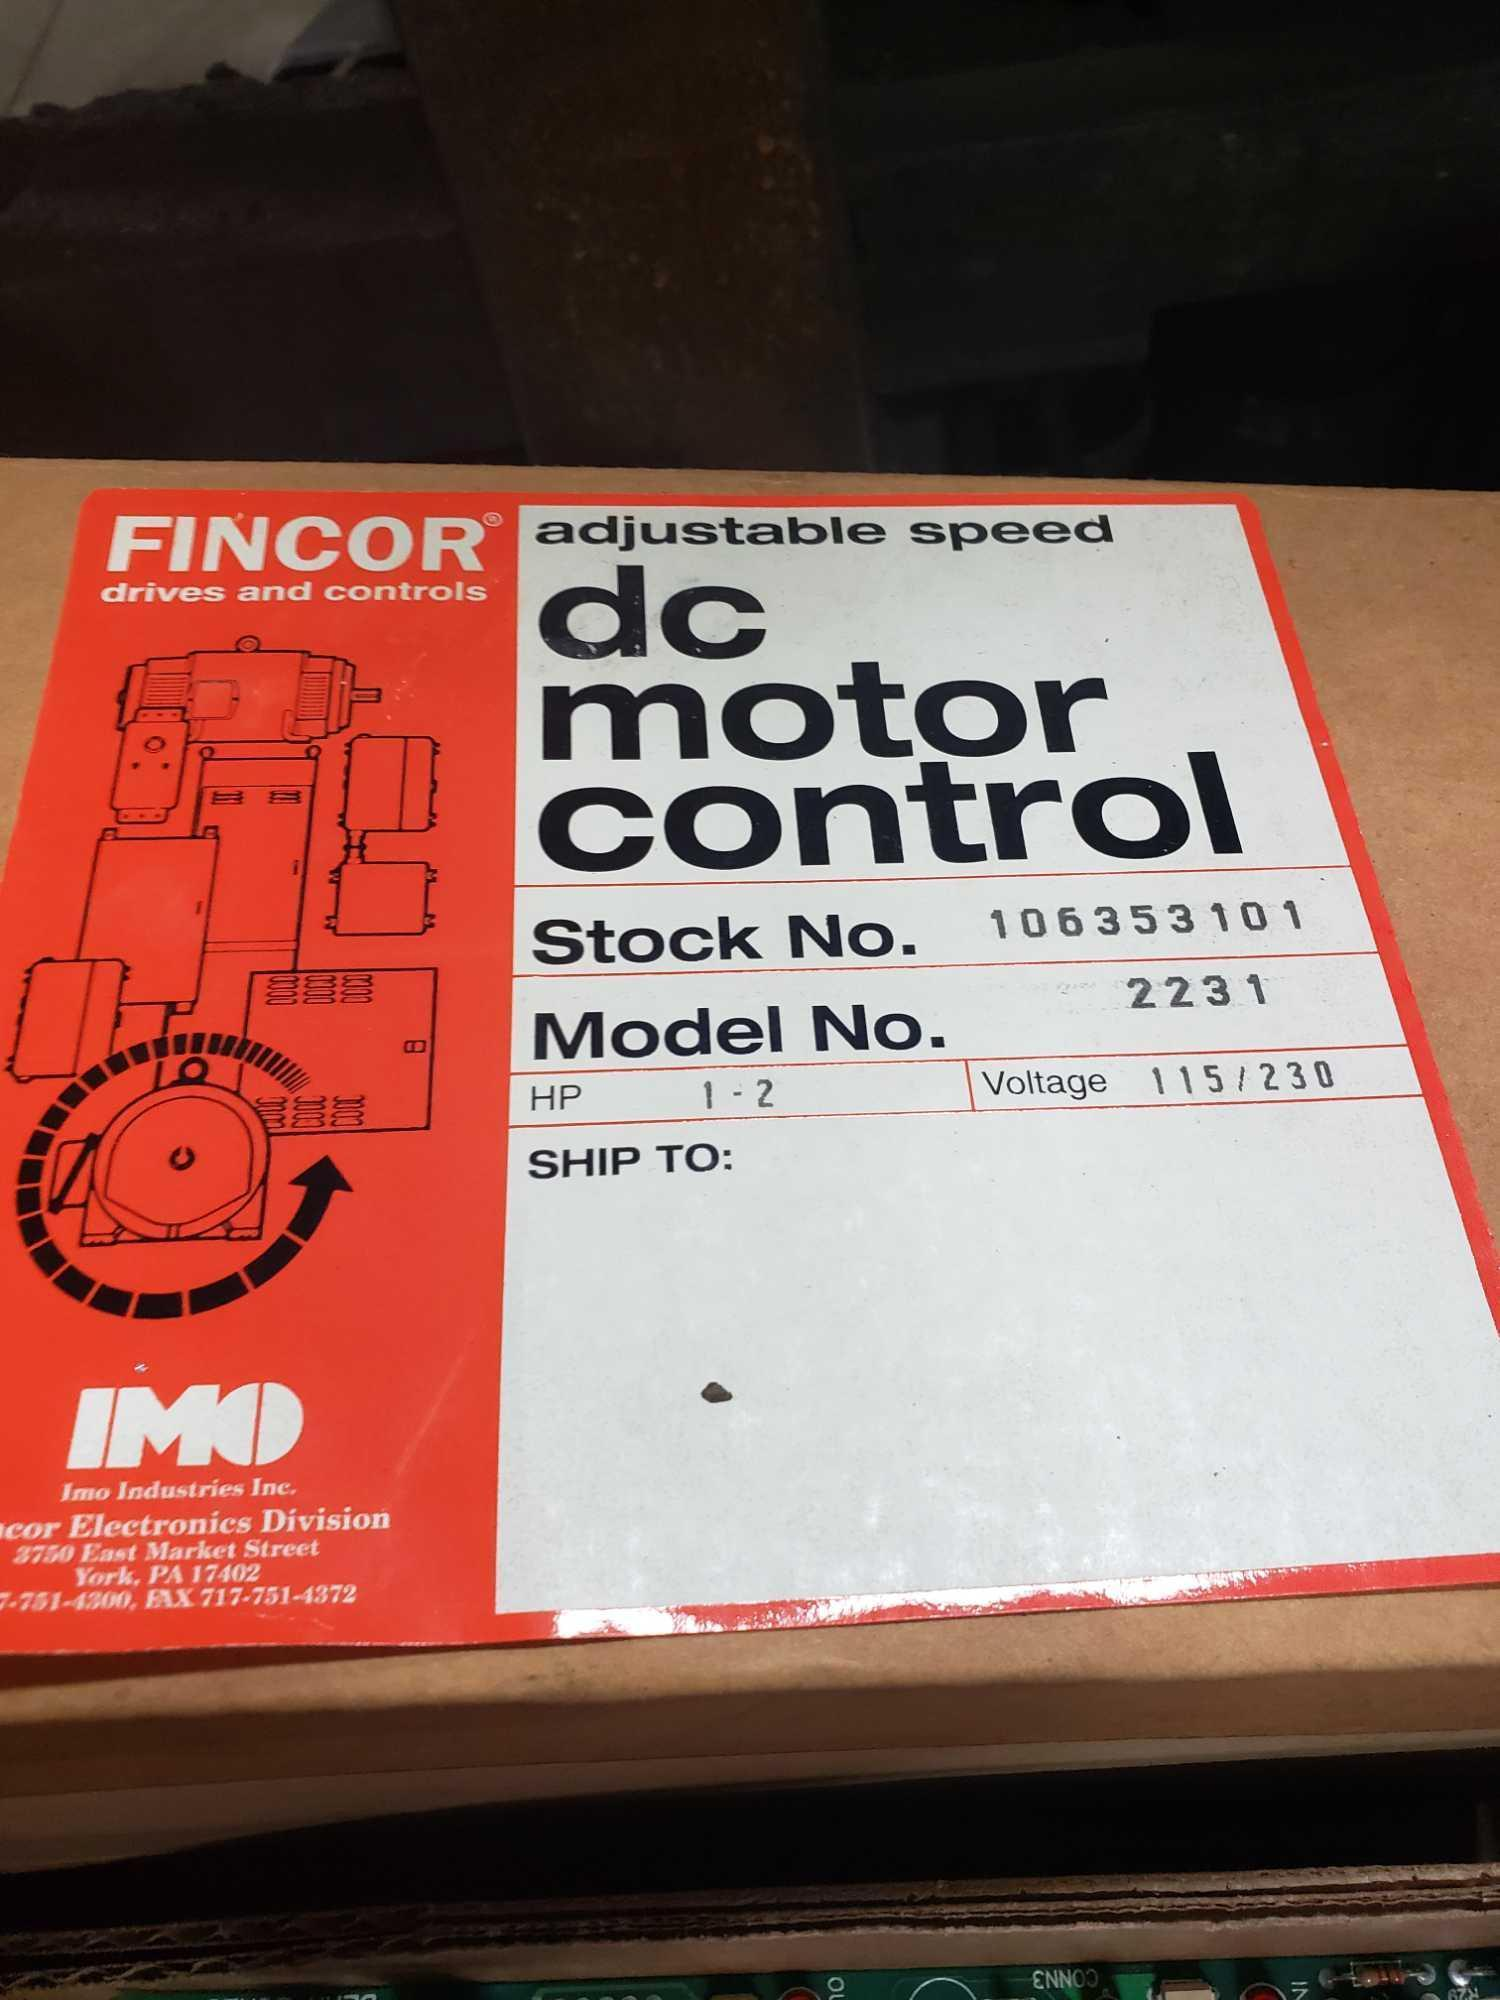 Fincor Drives adjustable speed control DC motor control model 2231. New in box. - Image 2 of 2